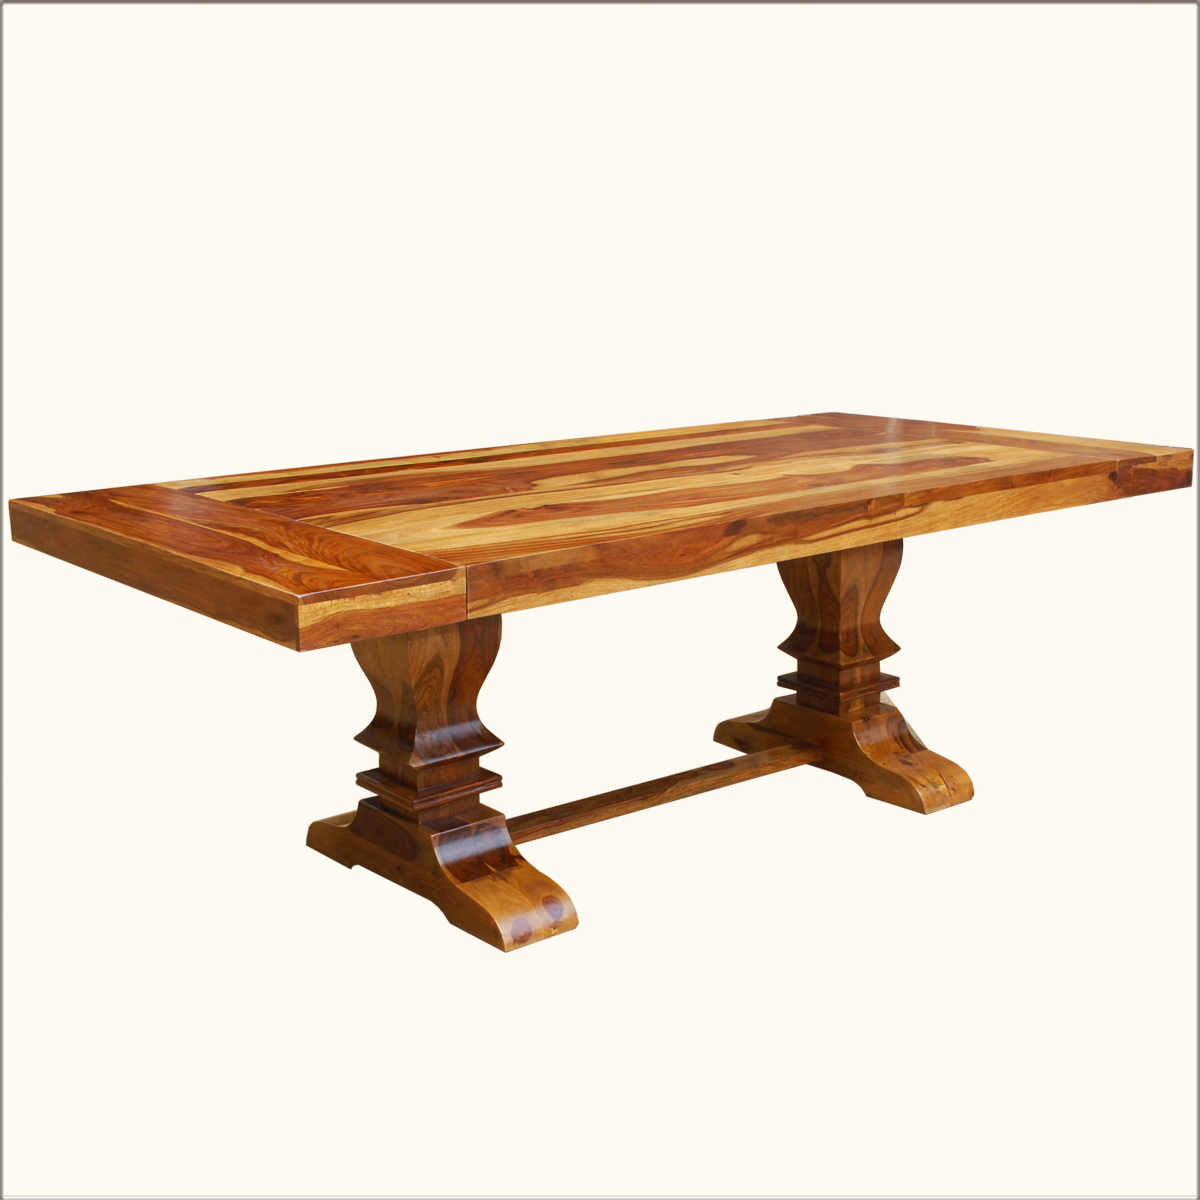 1200x1200px 7 Good Trestle Dining Table Sale Picture in Furniture